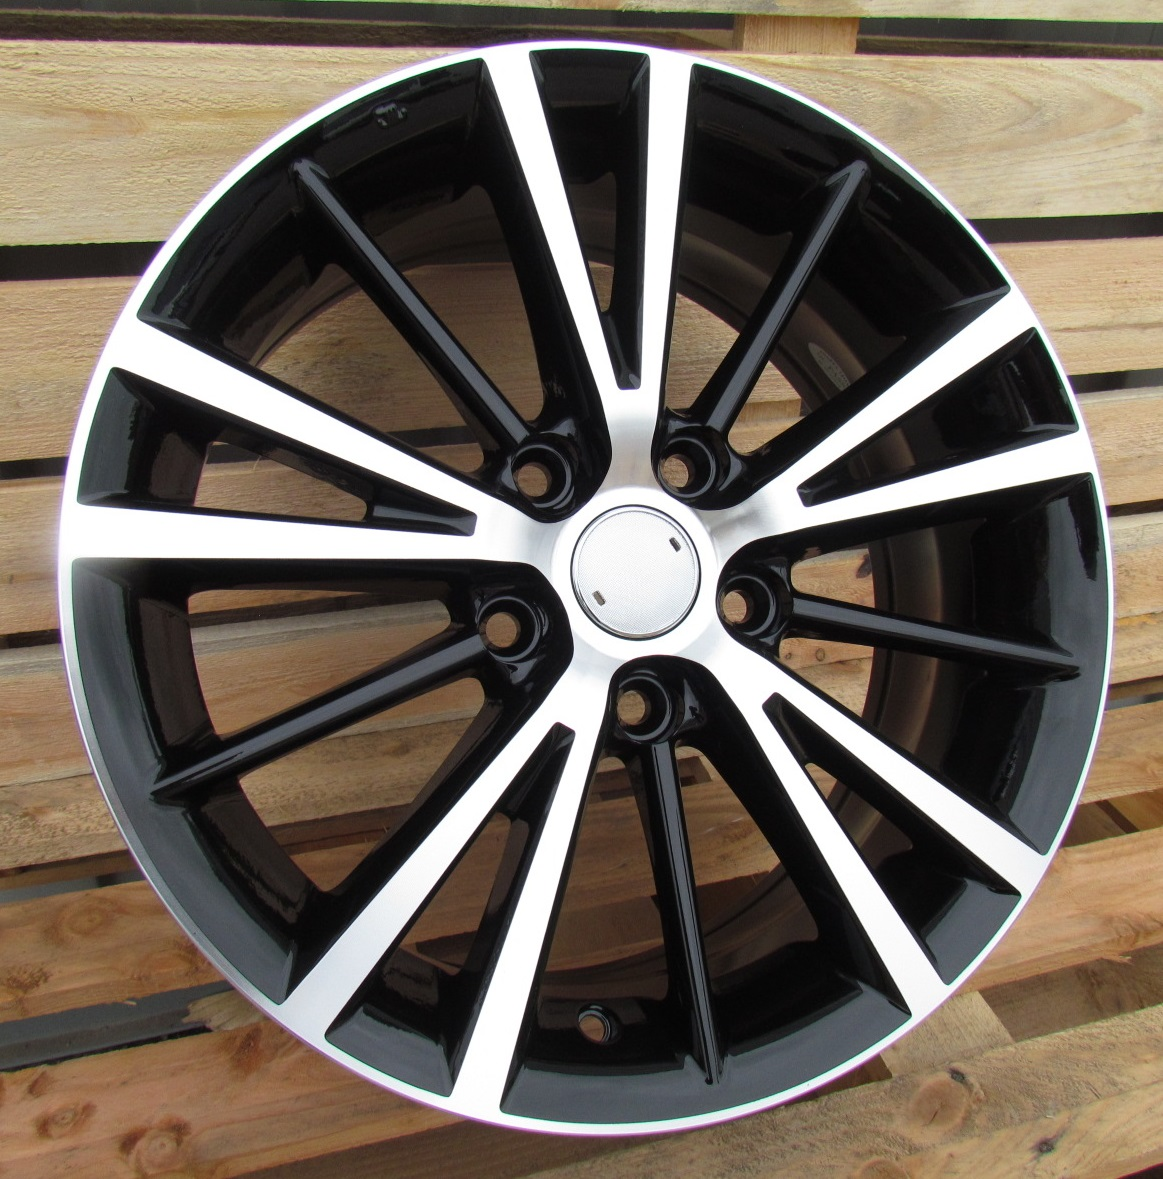 T15X6.5 5X114.3 ET40 60.1 A5197 MB+POWDER COATING (+3eur) RWR TOY ()## 6.5x15 ET40 5x114.3